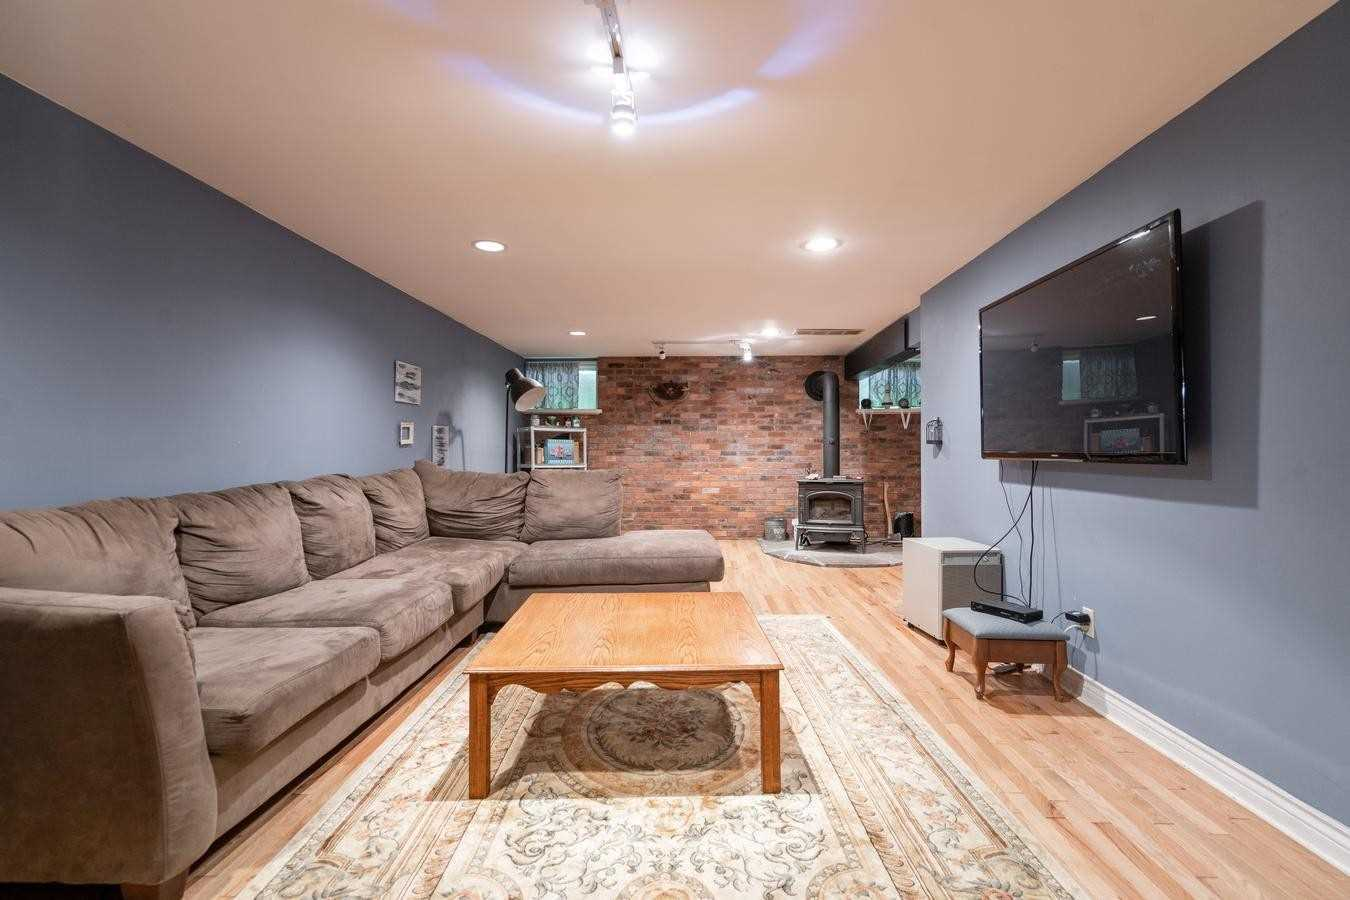 Detached house For Sale In Mono - 873235 5th Line Ehs Line, Mono, Ontario, Canada L9W6A4 , 4 Bedrooms Bedrooms, ,4 BathroomsBathrooms,Detached,For Sale,5th Line Ehs